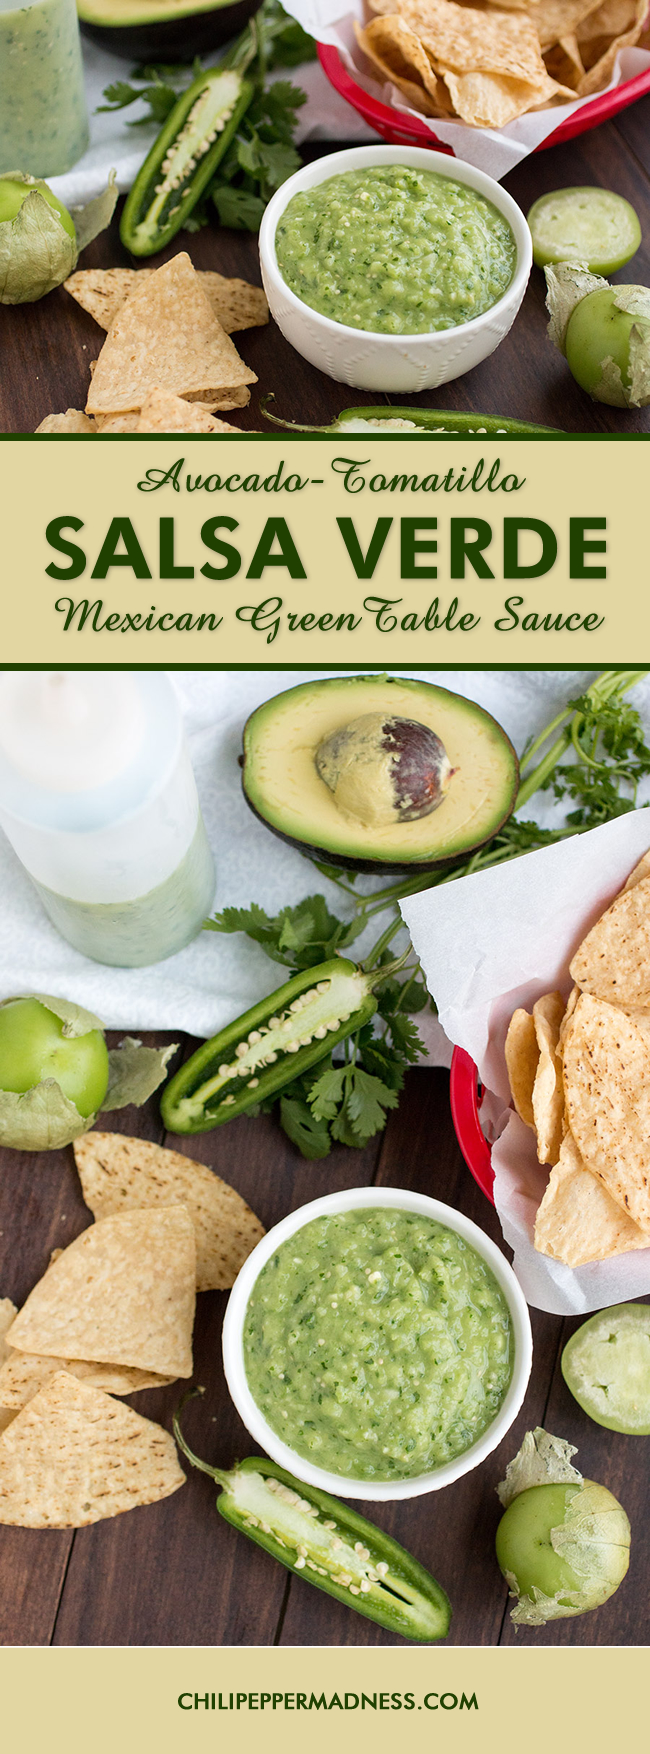 Avocado-Tomatillo Salsa Verde - Mexican Green Table Sauce - Recipe